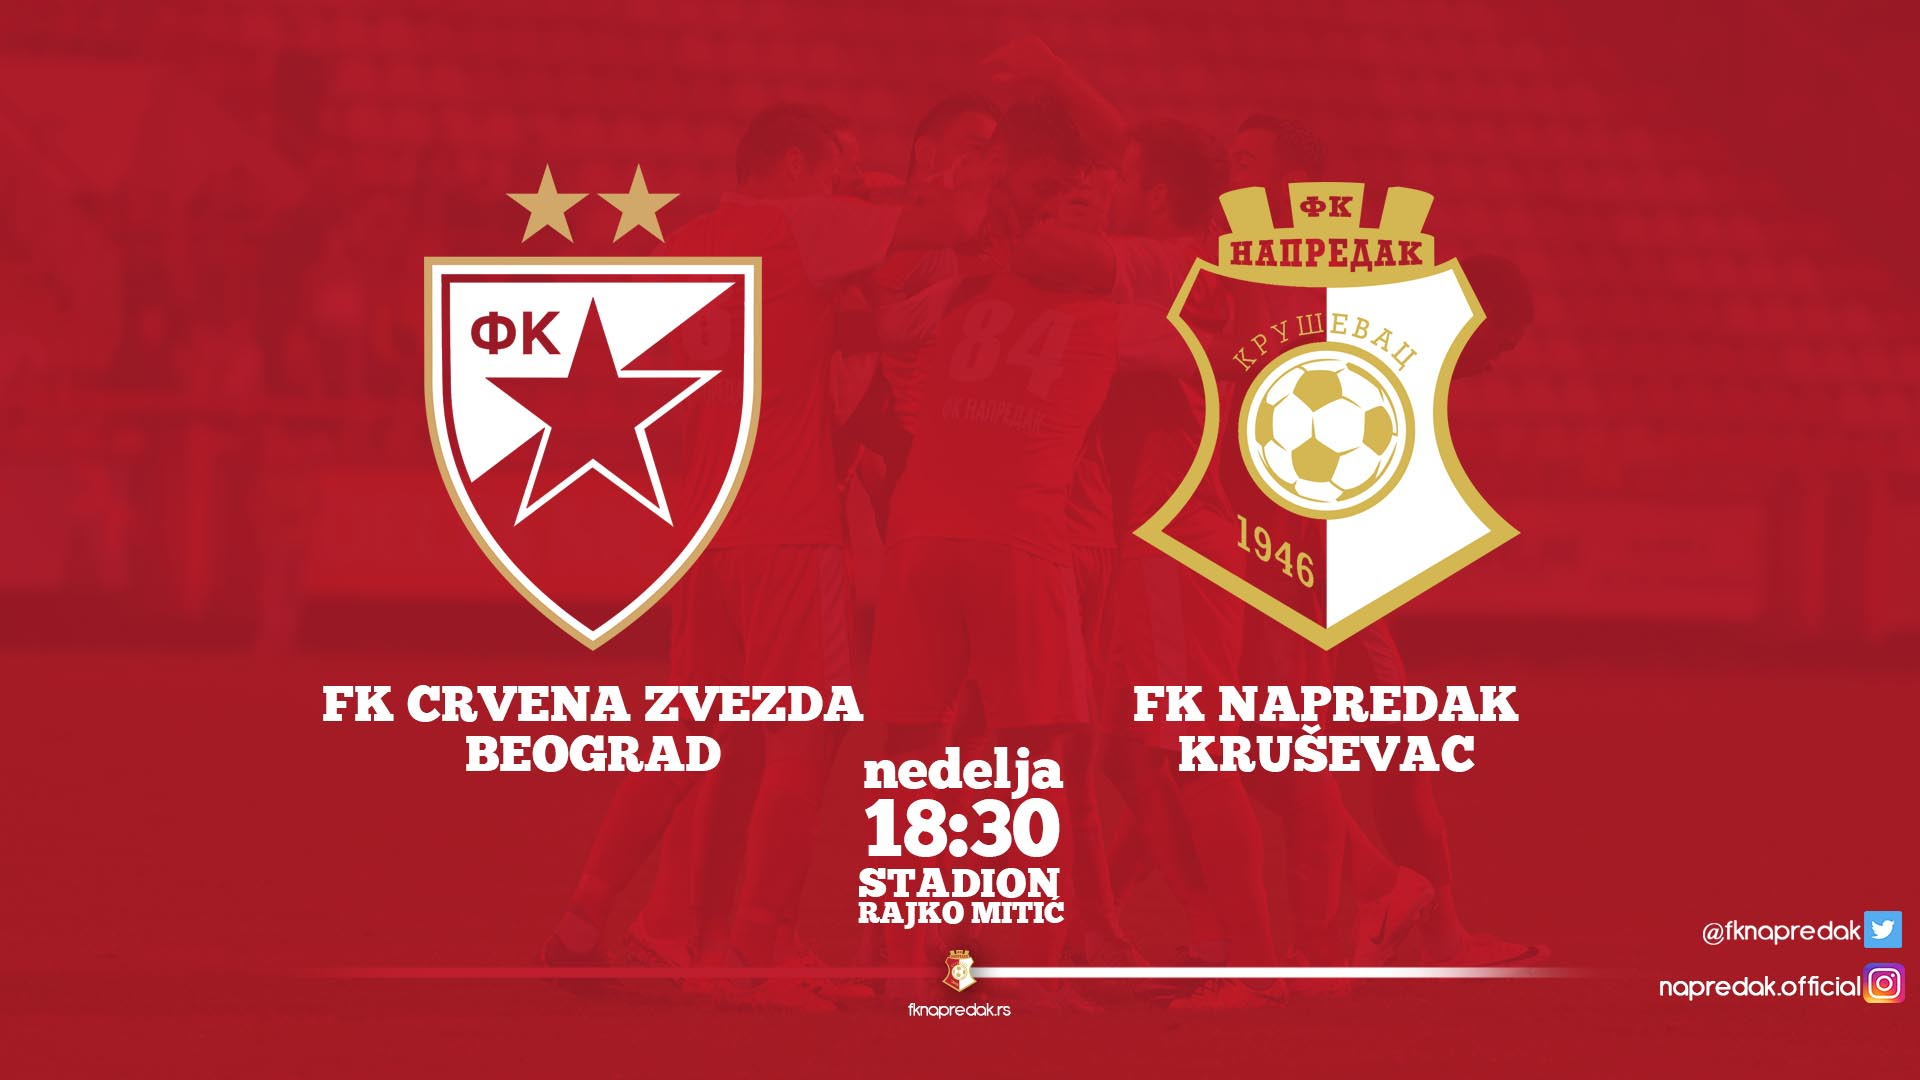 Red Star F.C-Napredak F.C. 3-0